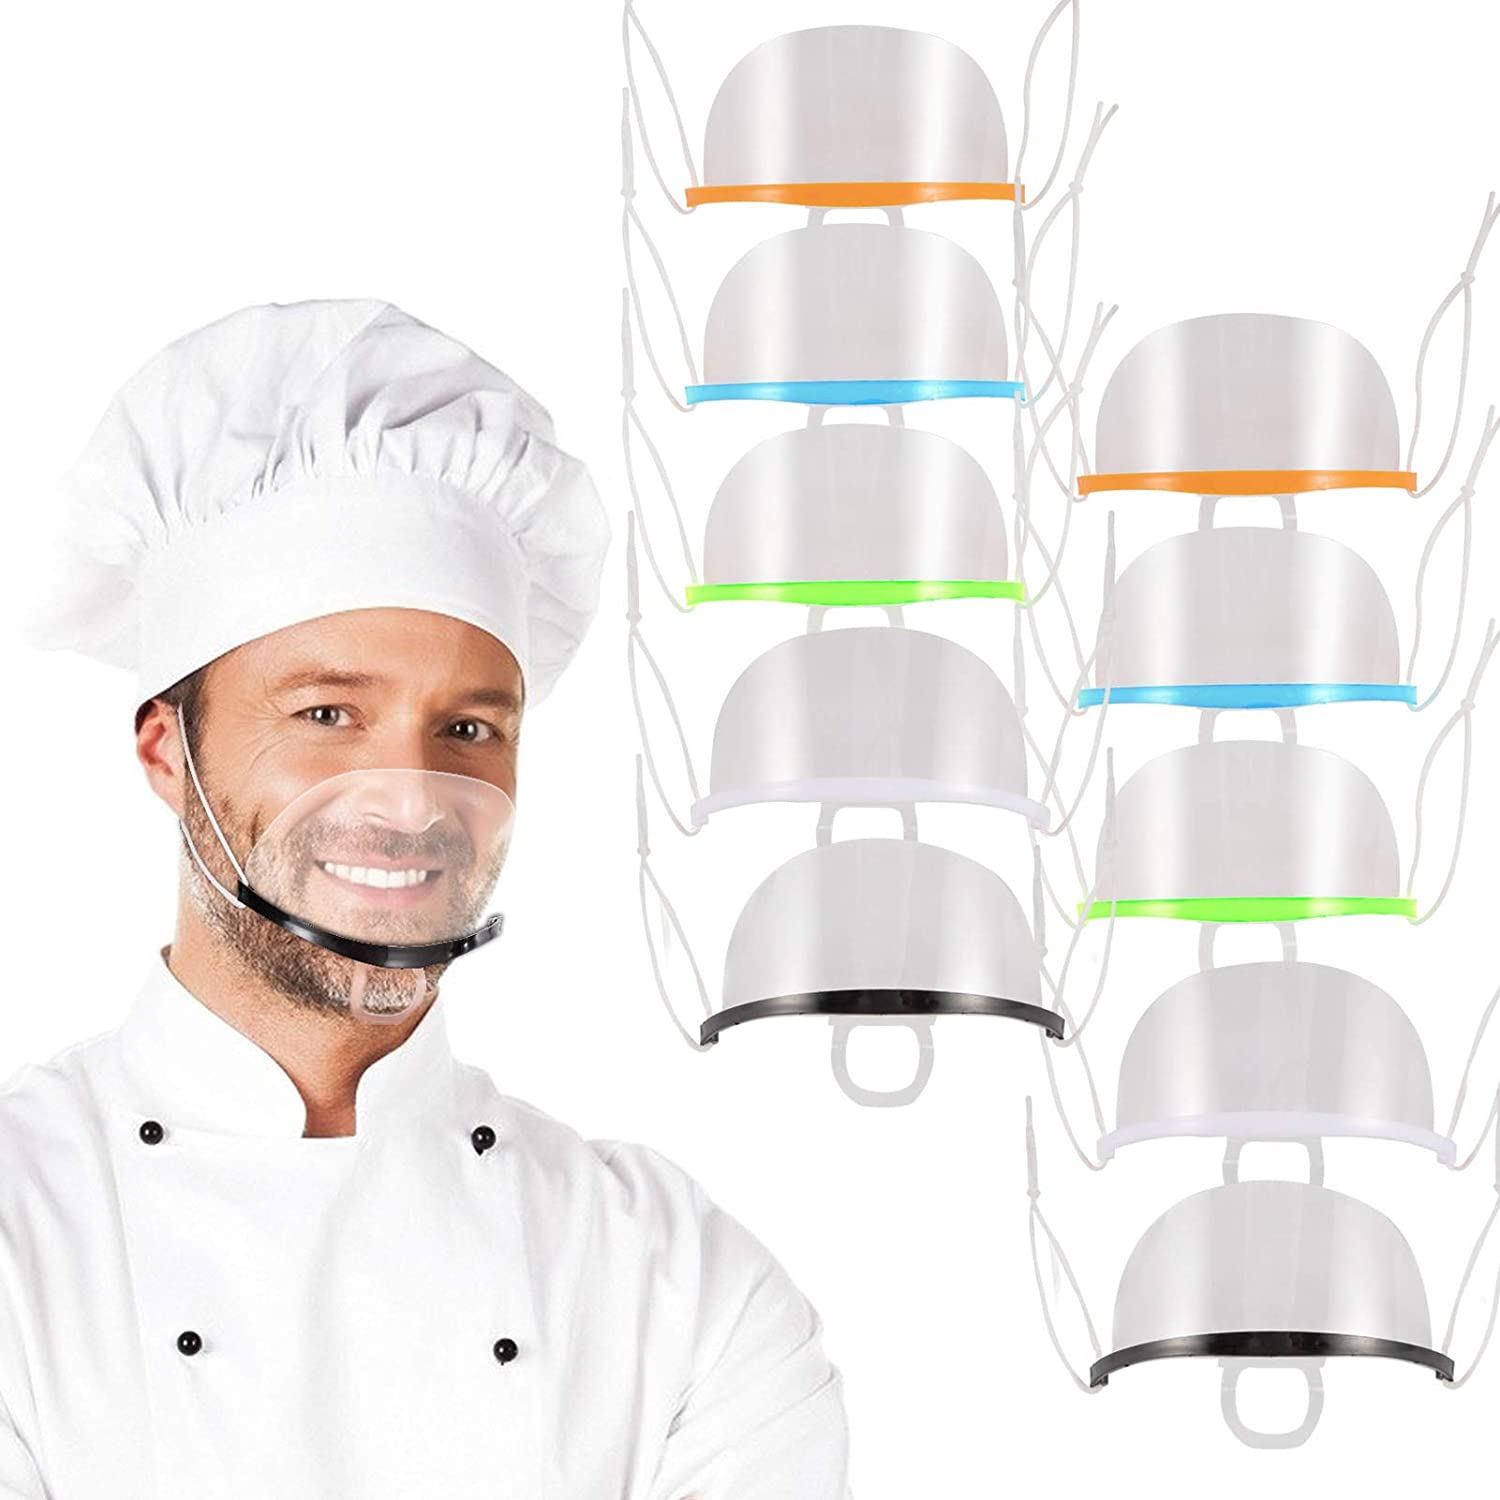 10pcs Fogless Transparent Open Face Guard- Reusable Face Mouth Cover in 5 Colors with Adjustable Strap Prevent Spit Clear Film Cover for Food Truck Bakery Restaurant Hotel Mall Beauty Salon